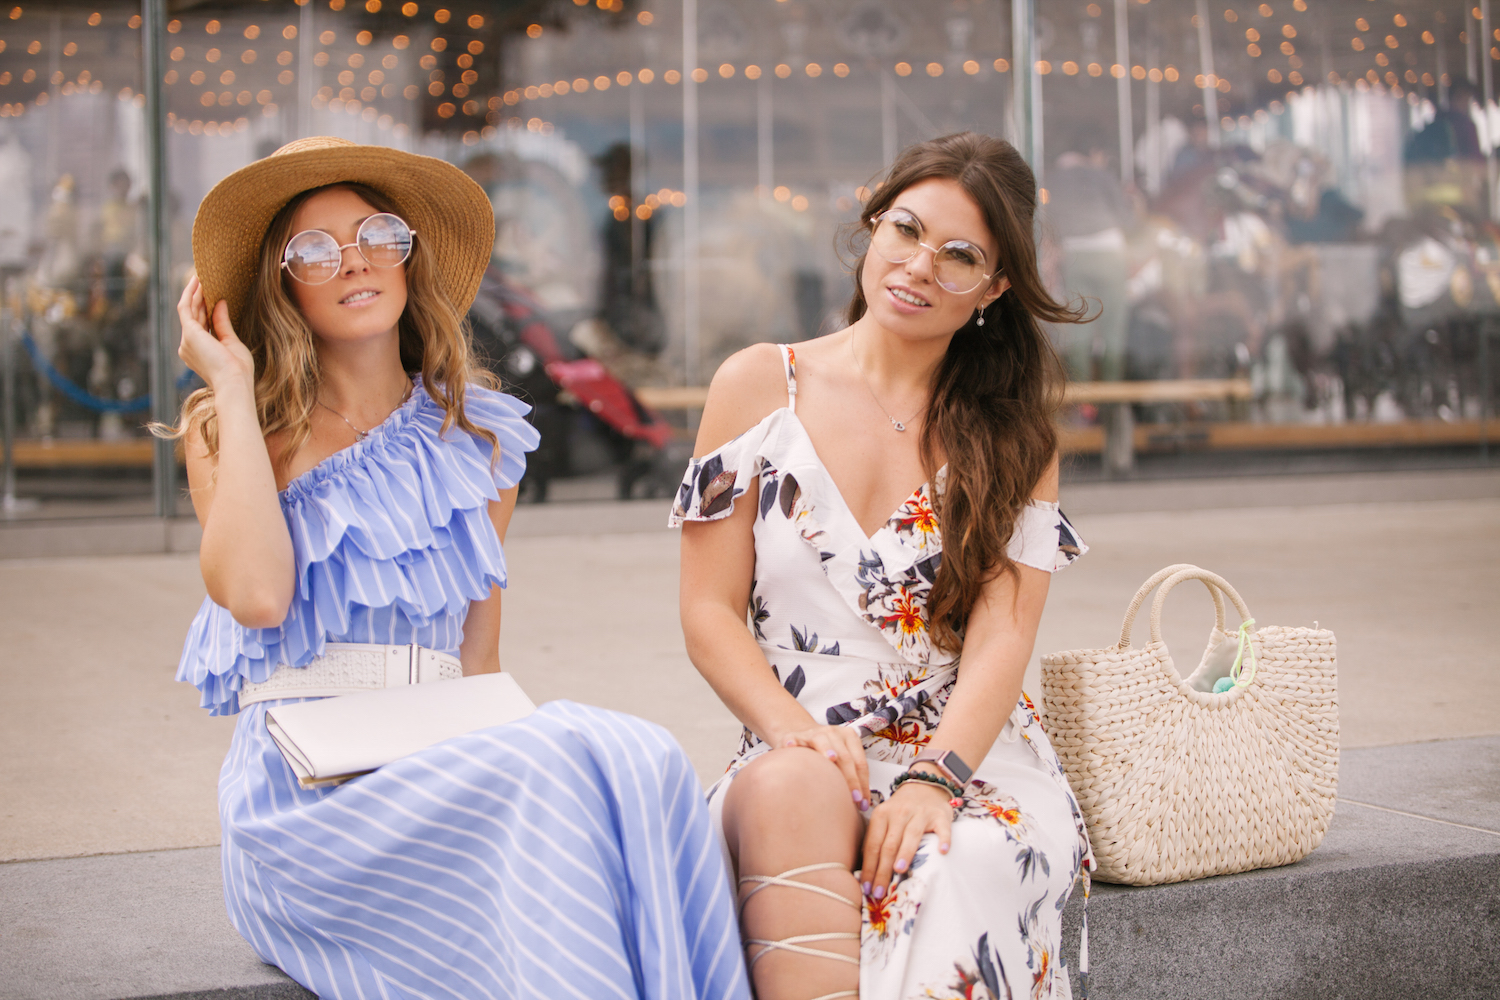 shein-collaboration-allbuenothings-sheinside-summer-dresses-nyc-blogger-stylish-newyorker